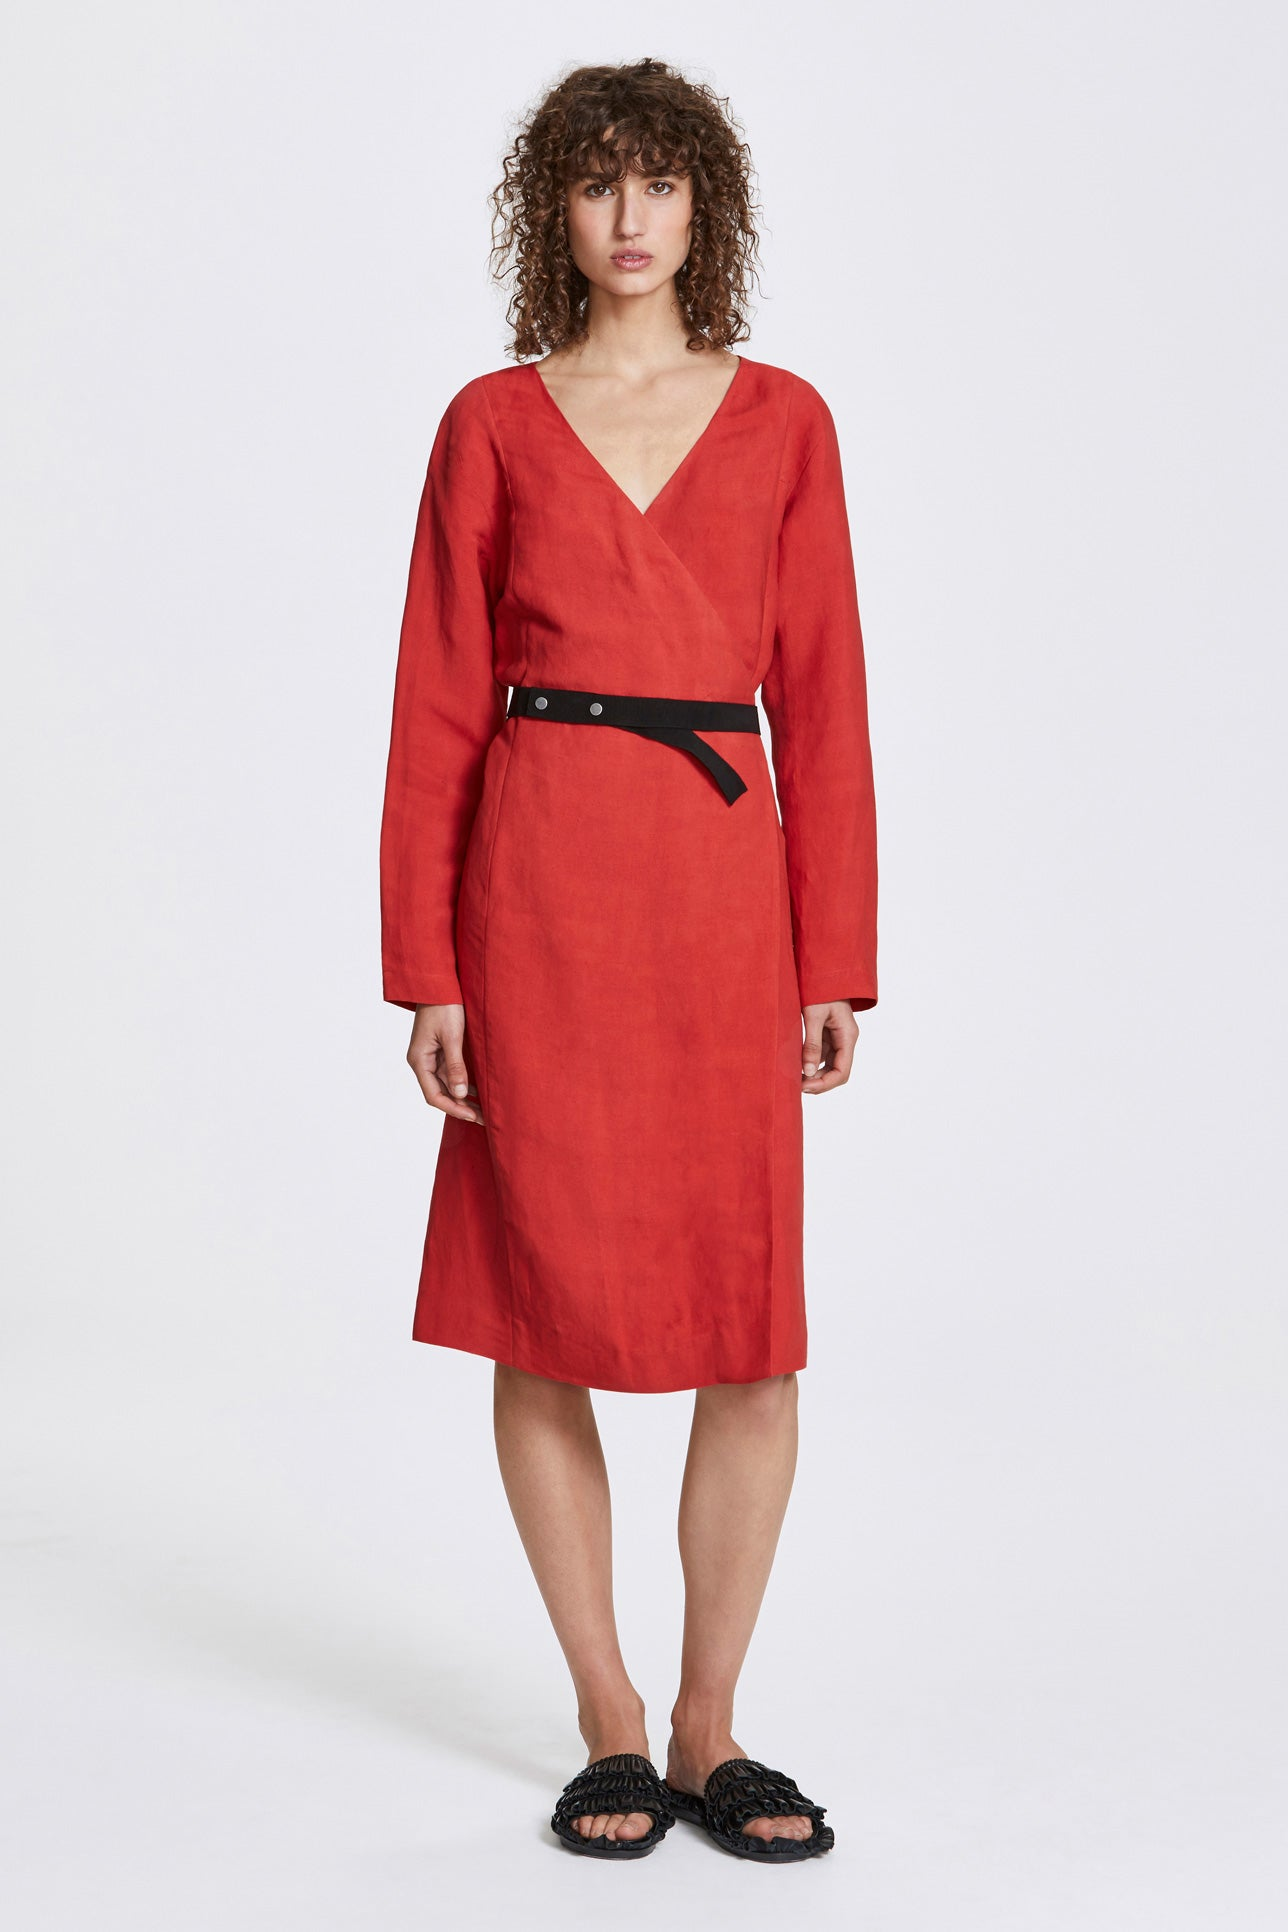 Bi-stud wrap dress - Linen blend - Lava red - Resortwear dress - Her Line